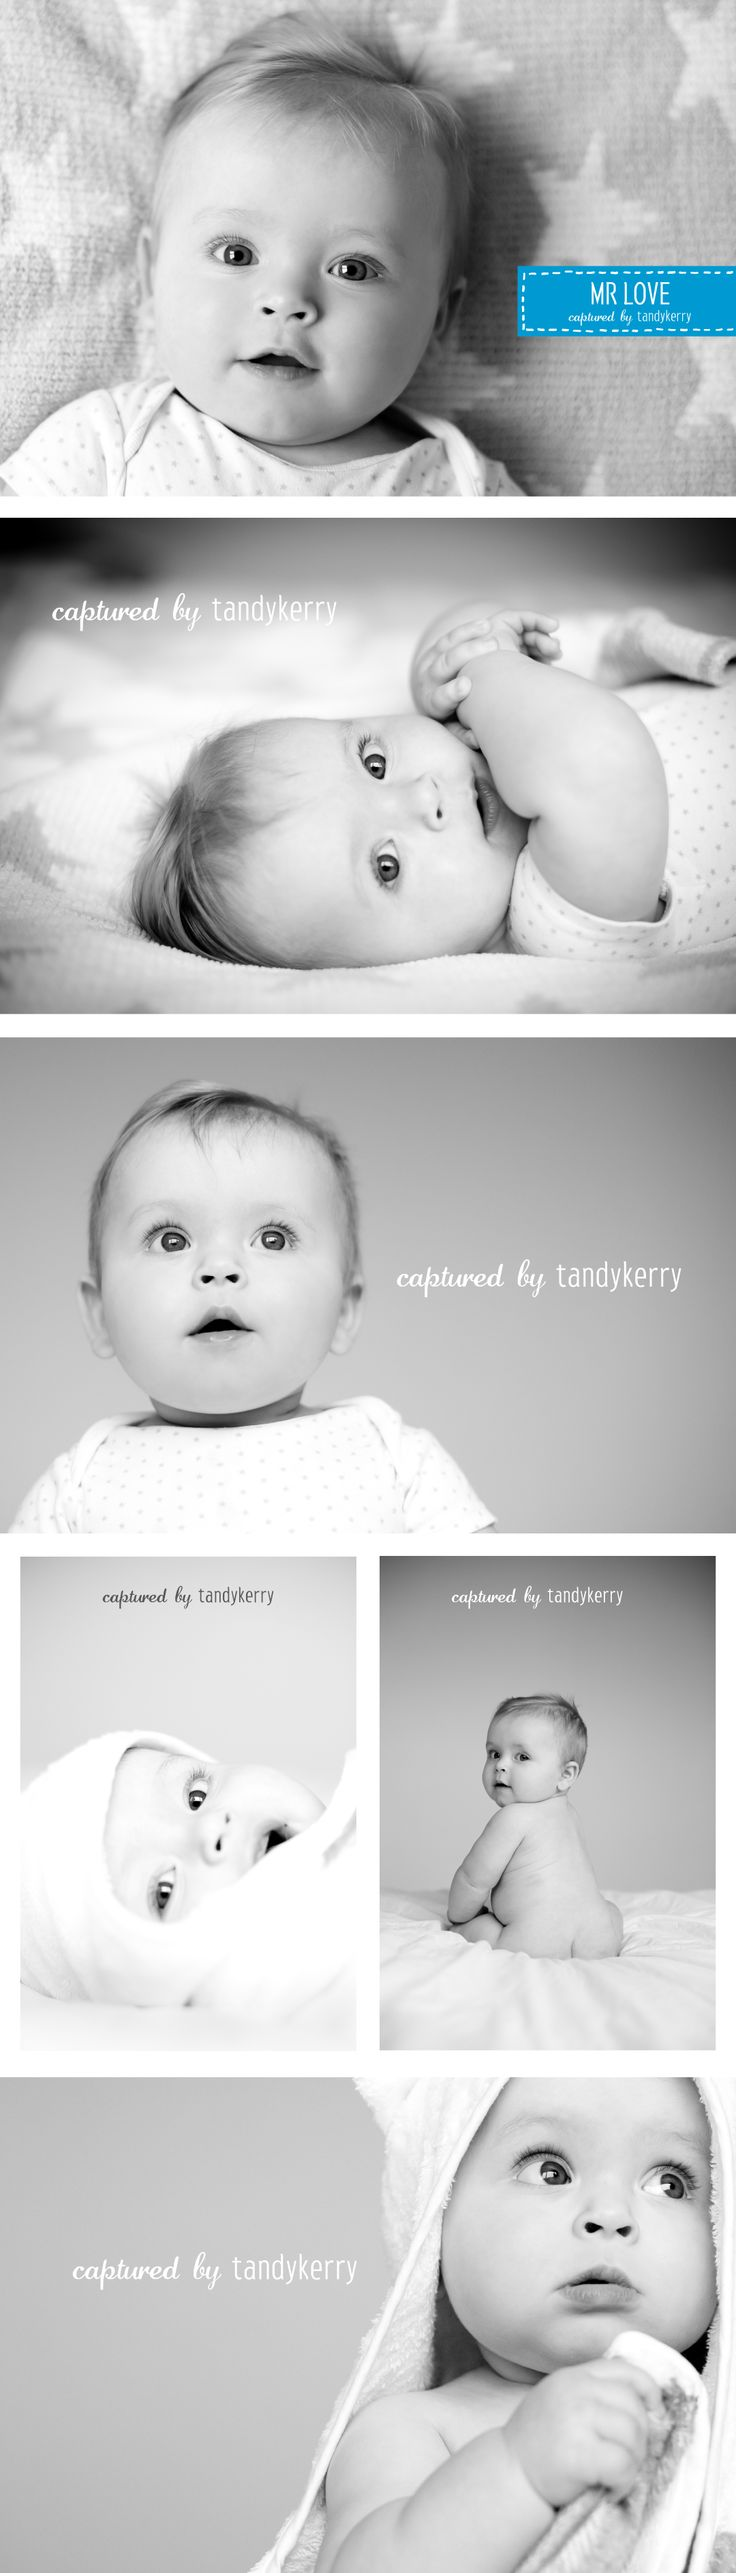 Simple baby photos - love how the personality shines through instead of cutesy stuff that will look dated in a few years